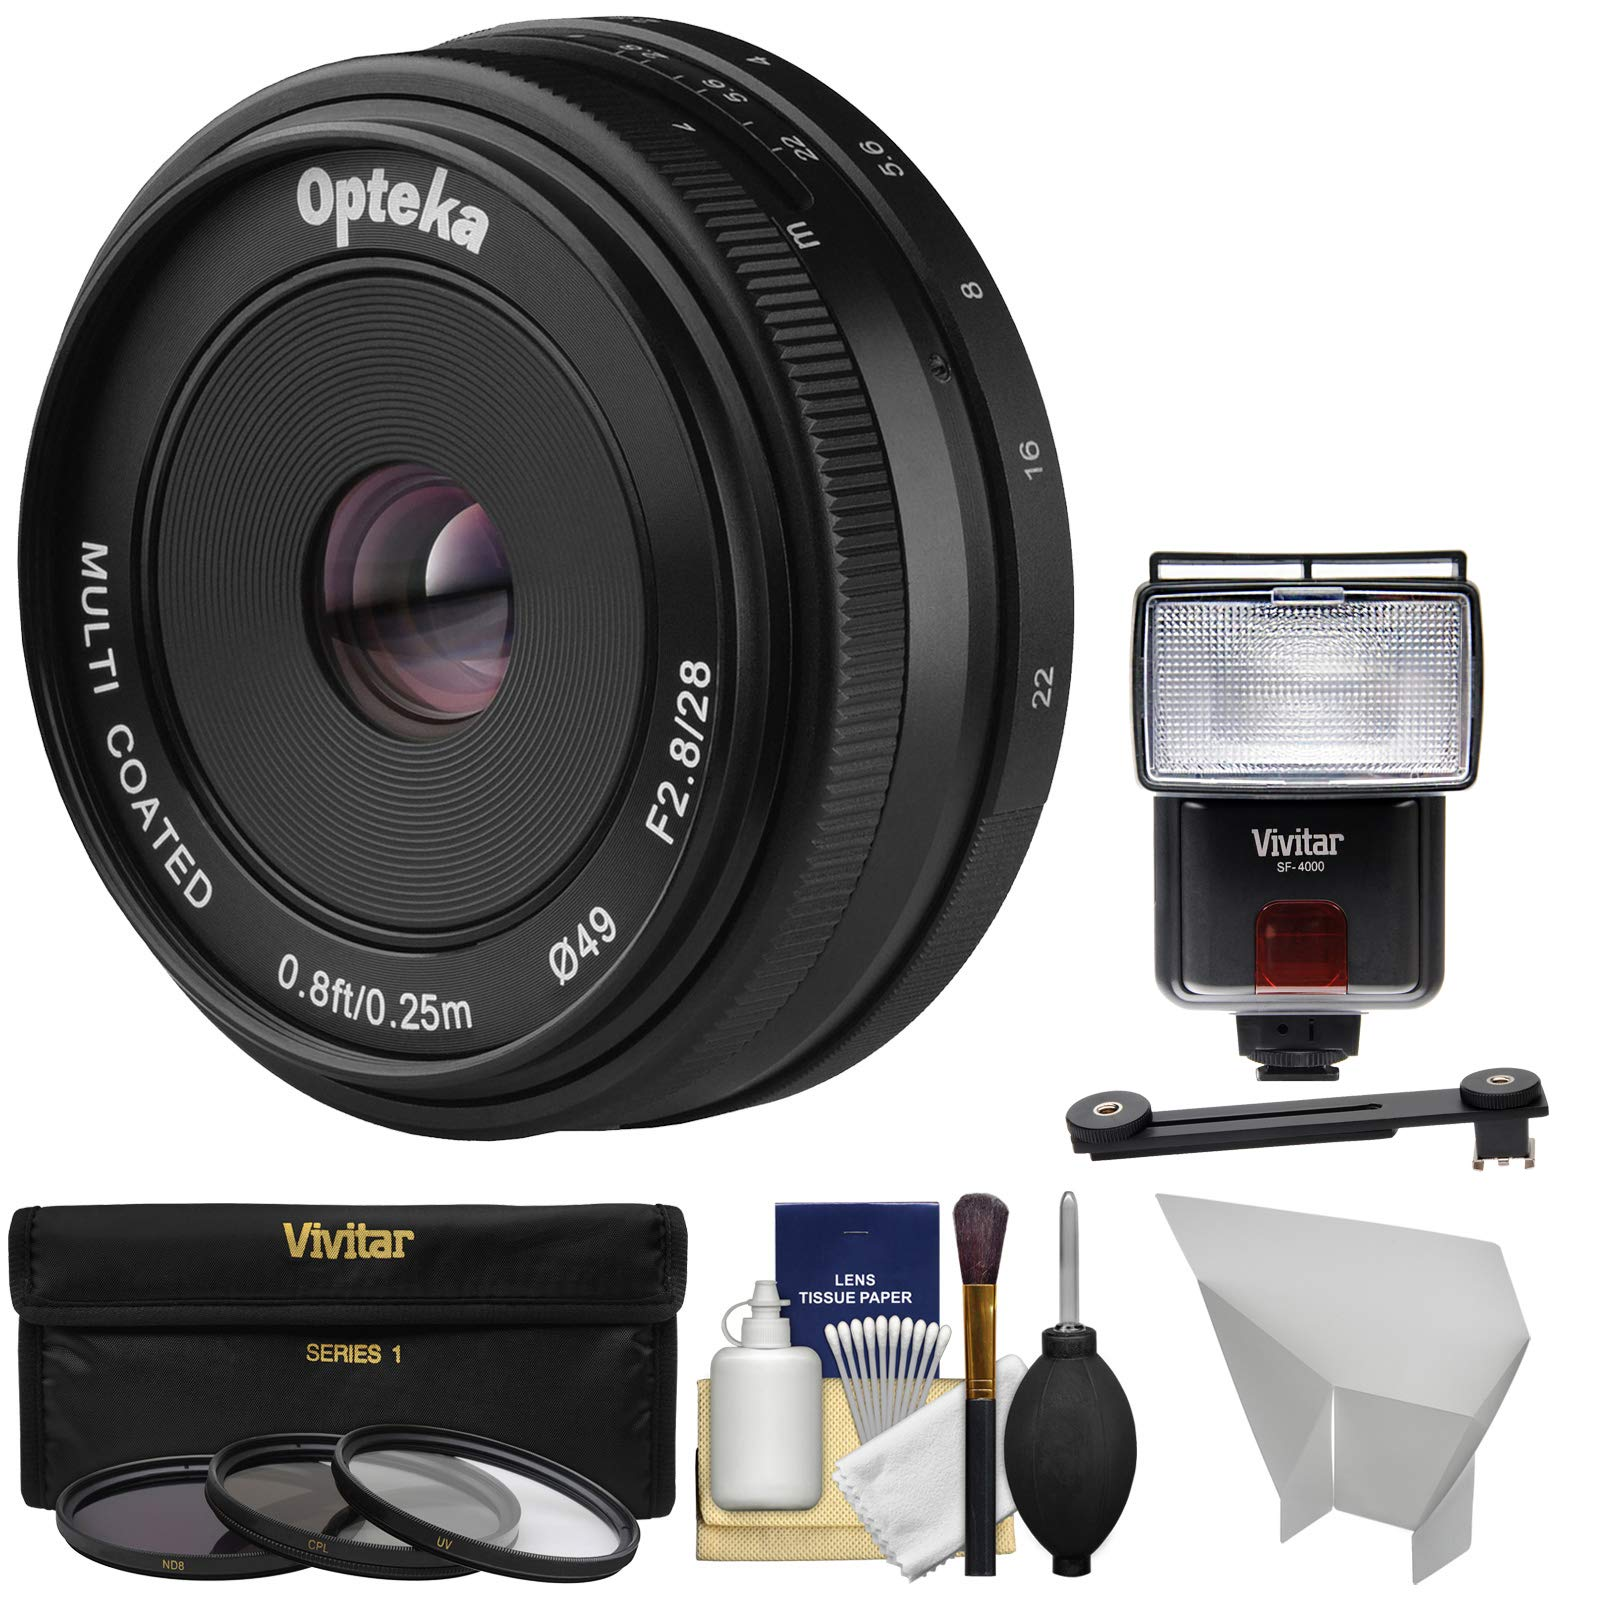 Opteka 28mm f/2.8 HD MF Prime Pancake Lens with 3 Filters + Flash + Diffusers + Kit for Sony Alpha E-Mount Digital Cameras by Opteka